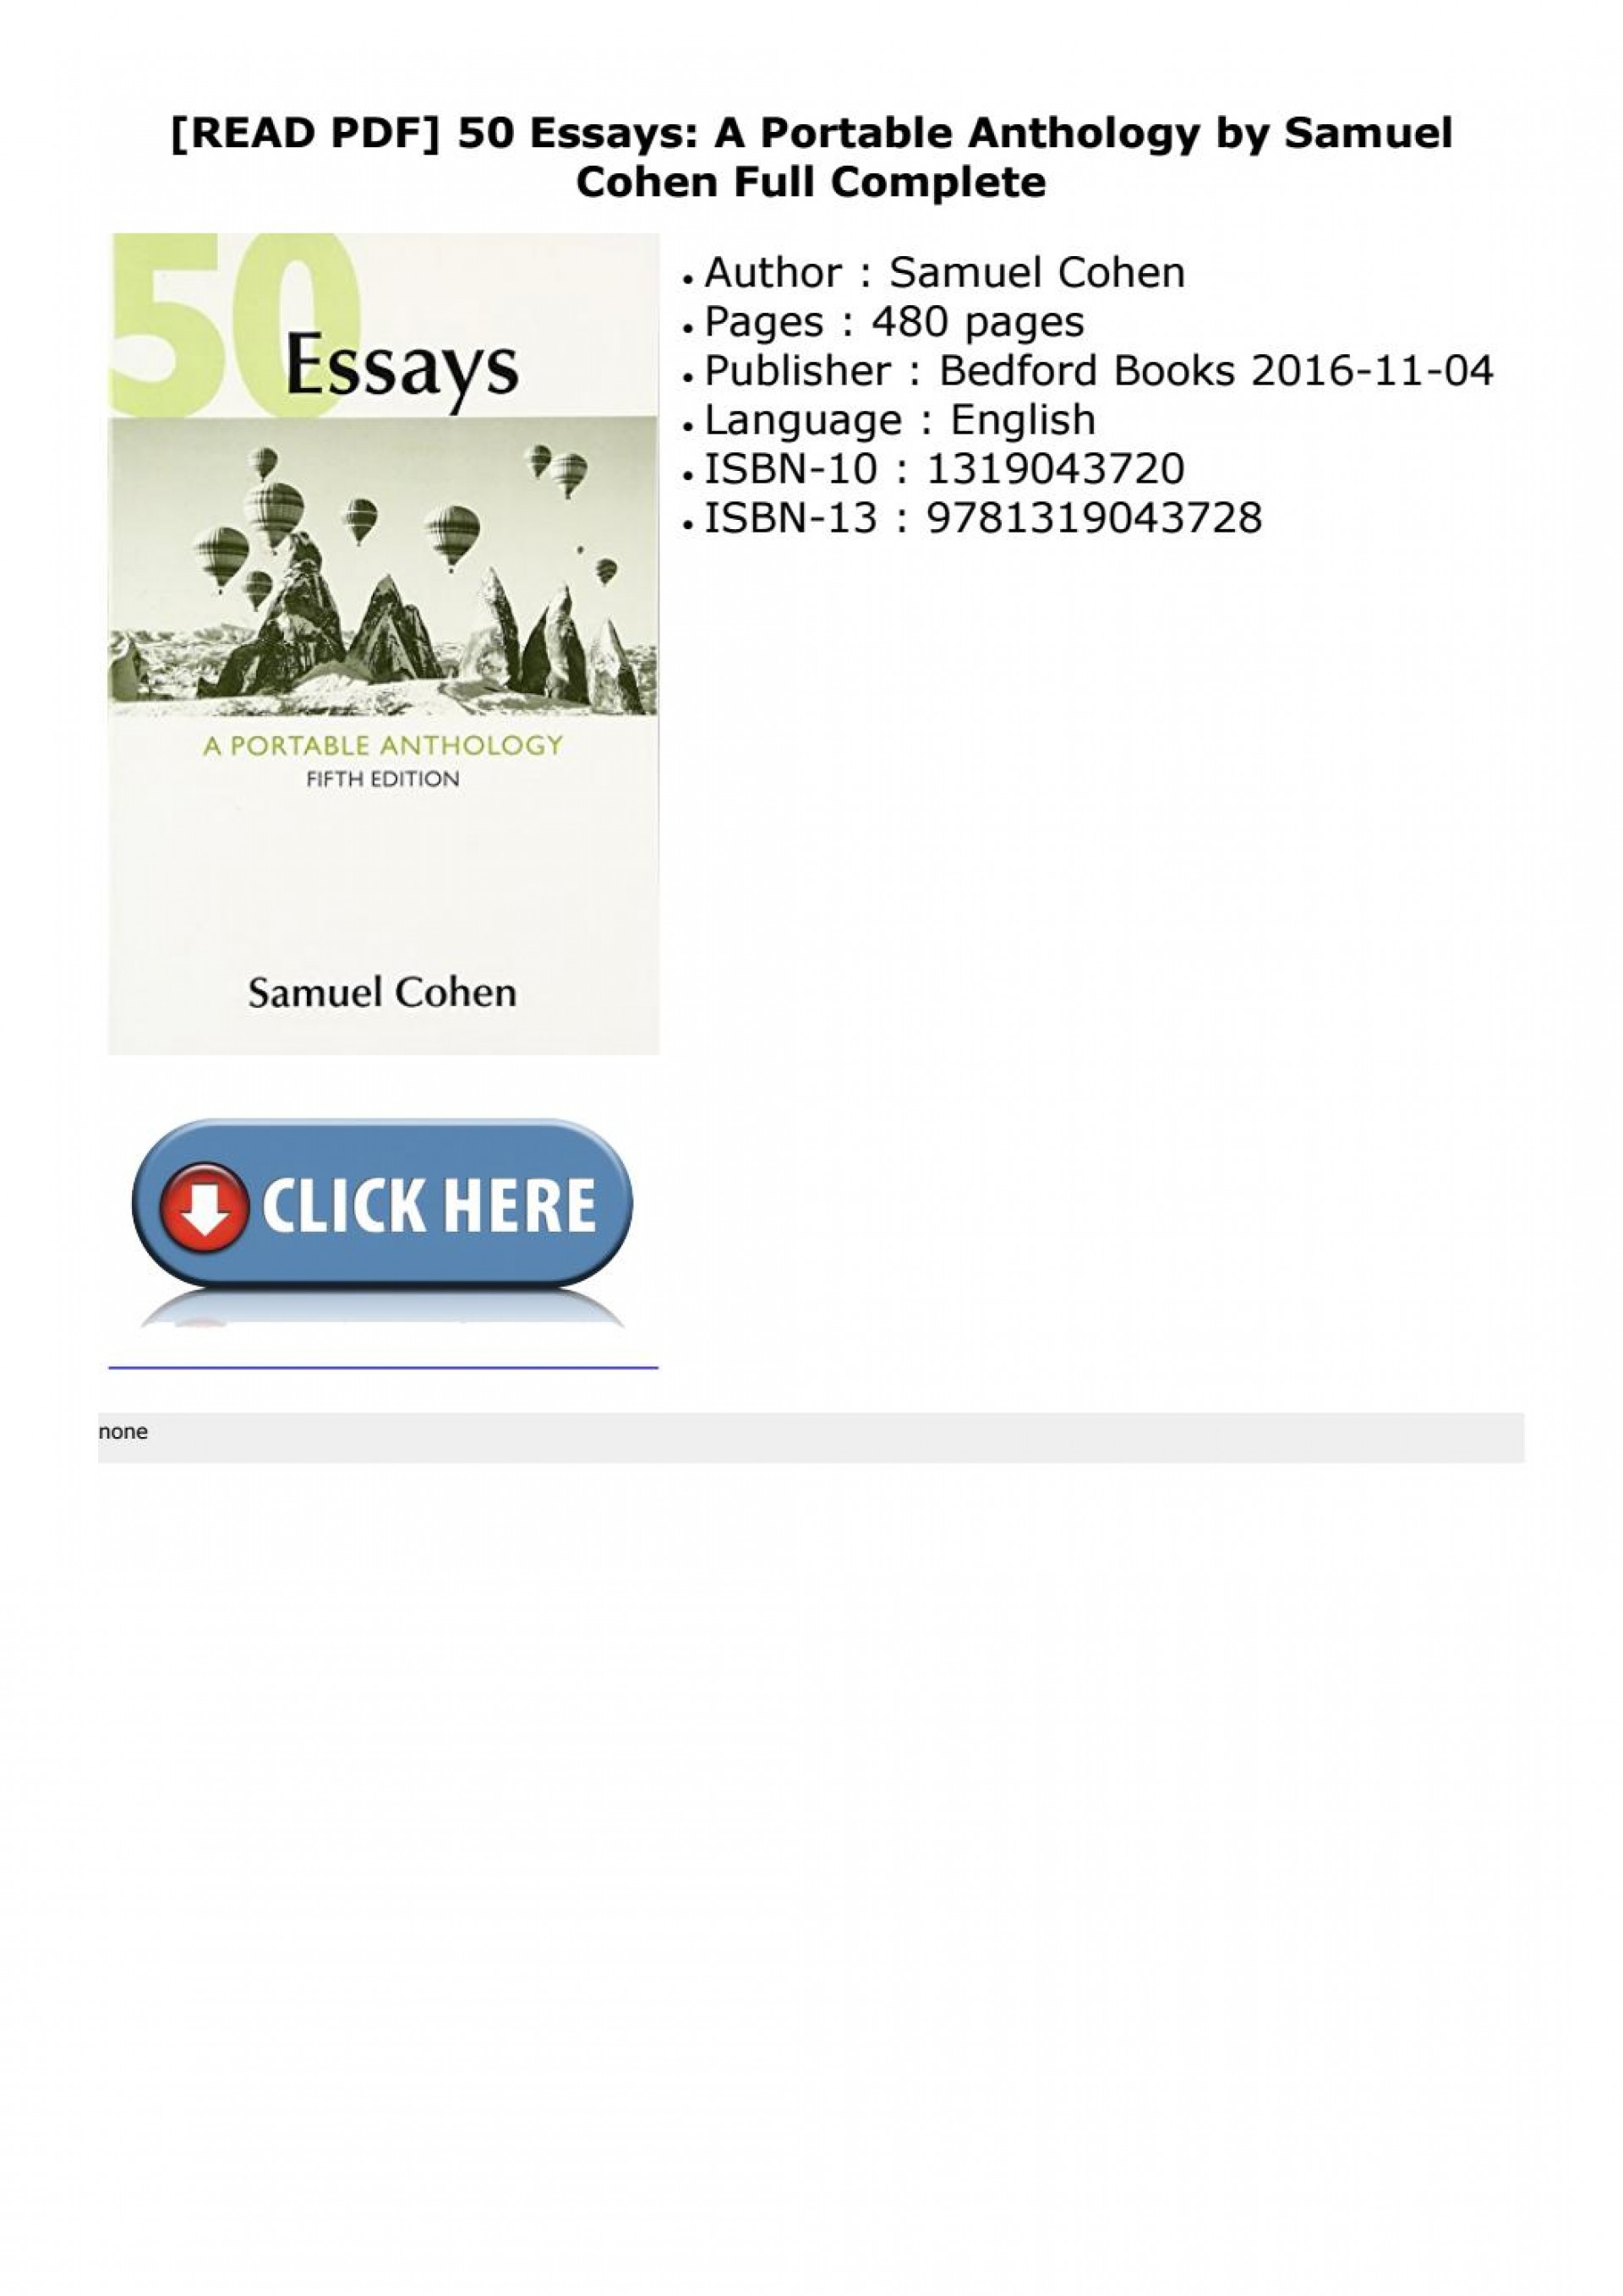 021 Page 1 Essays 5th Edition Essay Imposing 50 Fifty Great Pdf Free A Portable Anthology Ebook 1920